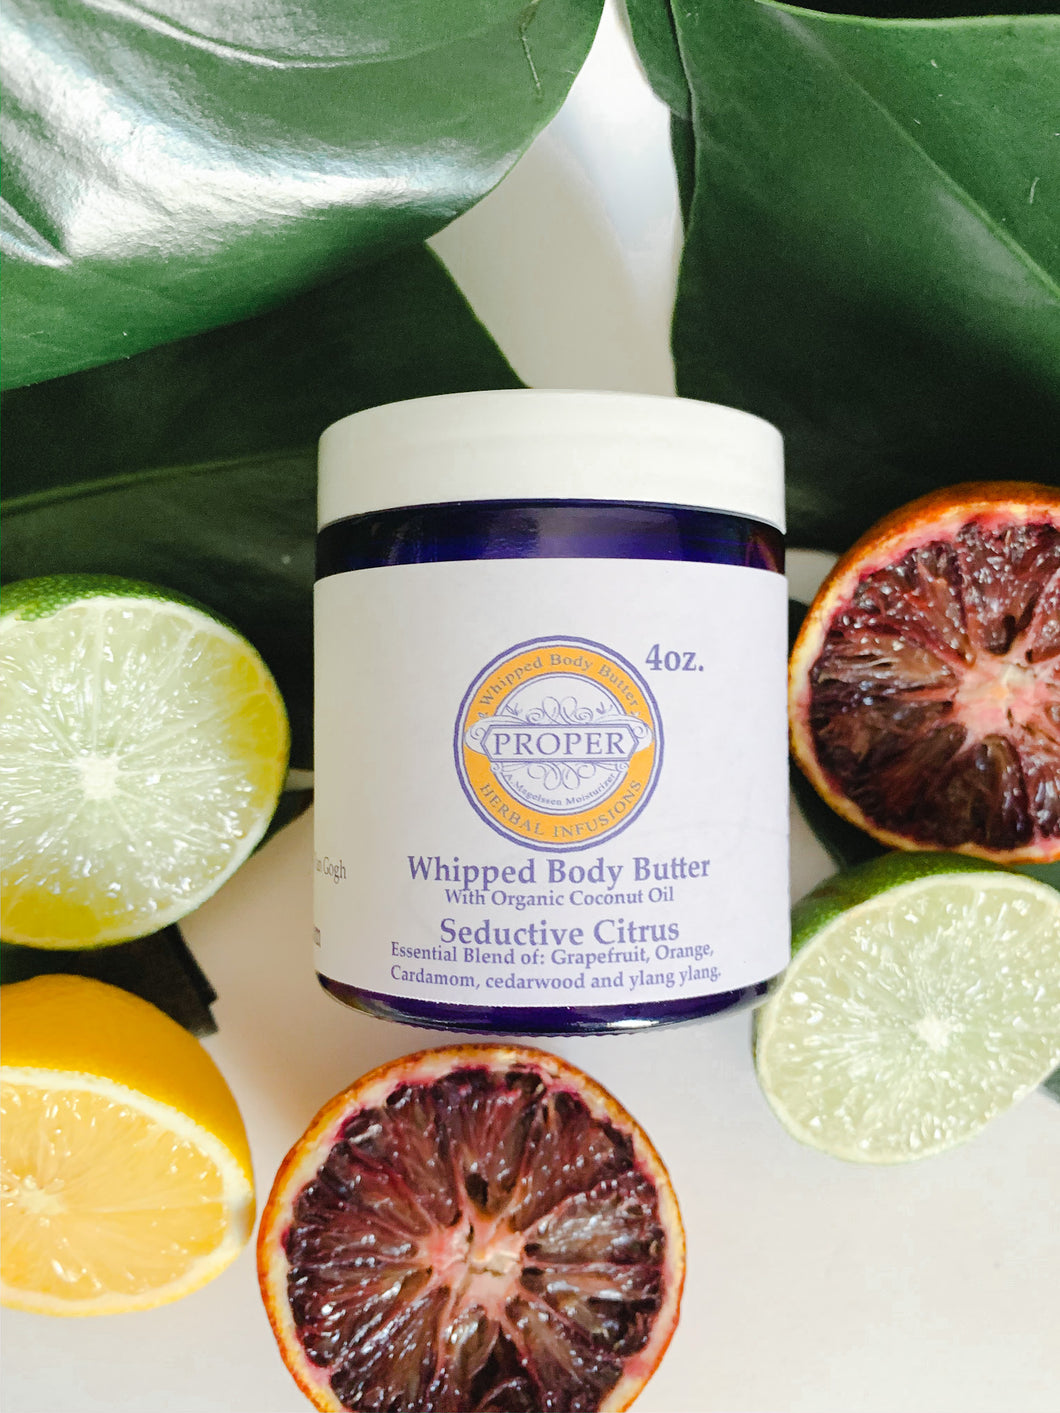 Whipped body butter - Seductive Citrus